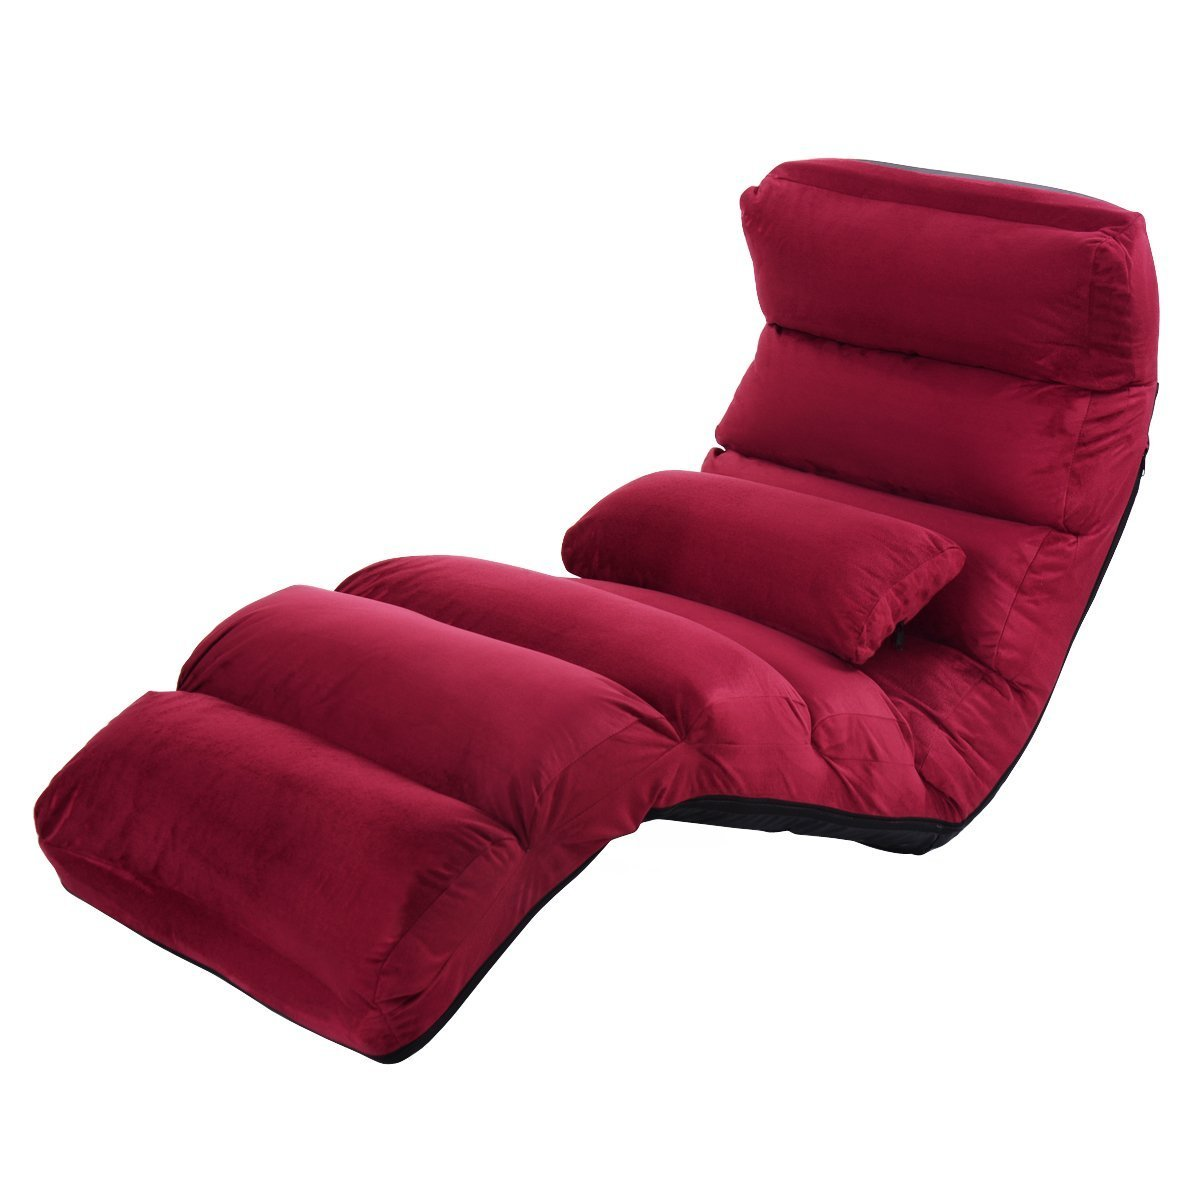 Chaise lounge sofa bed home furniture design - Sofa bed with chaise lounge ...